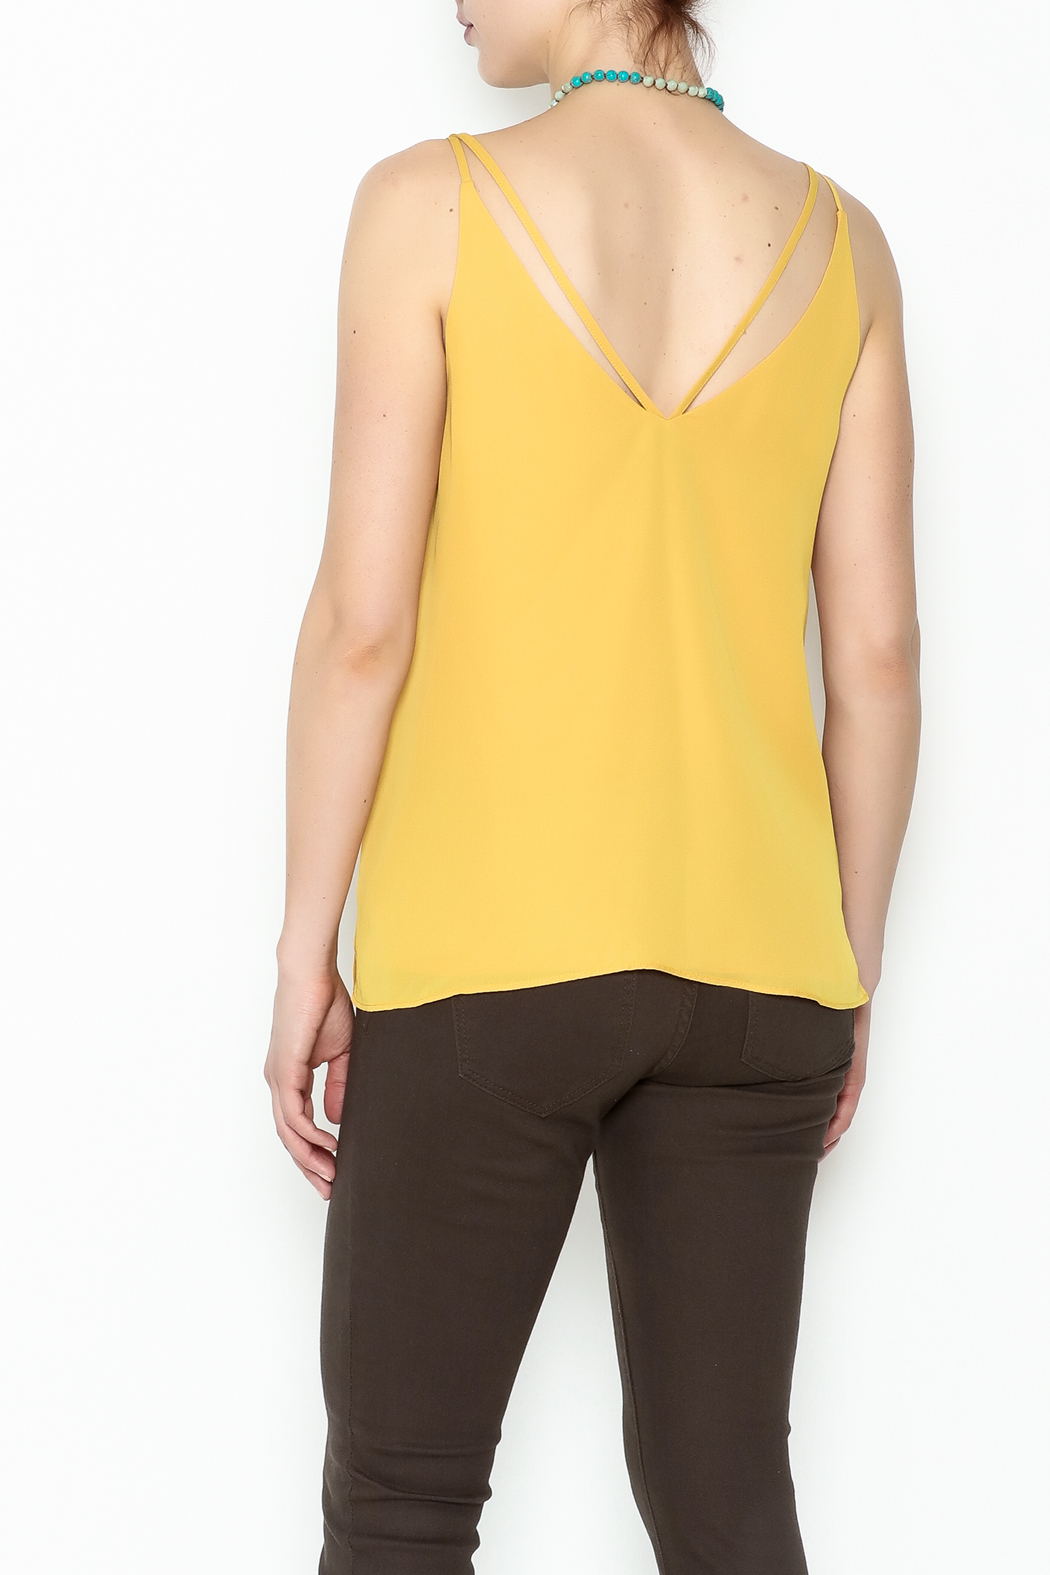 HYFVE Double Strap Top - Back Cropped Image